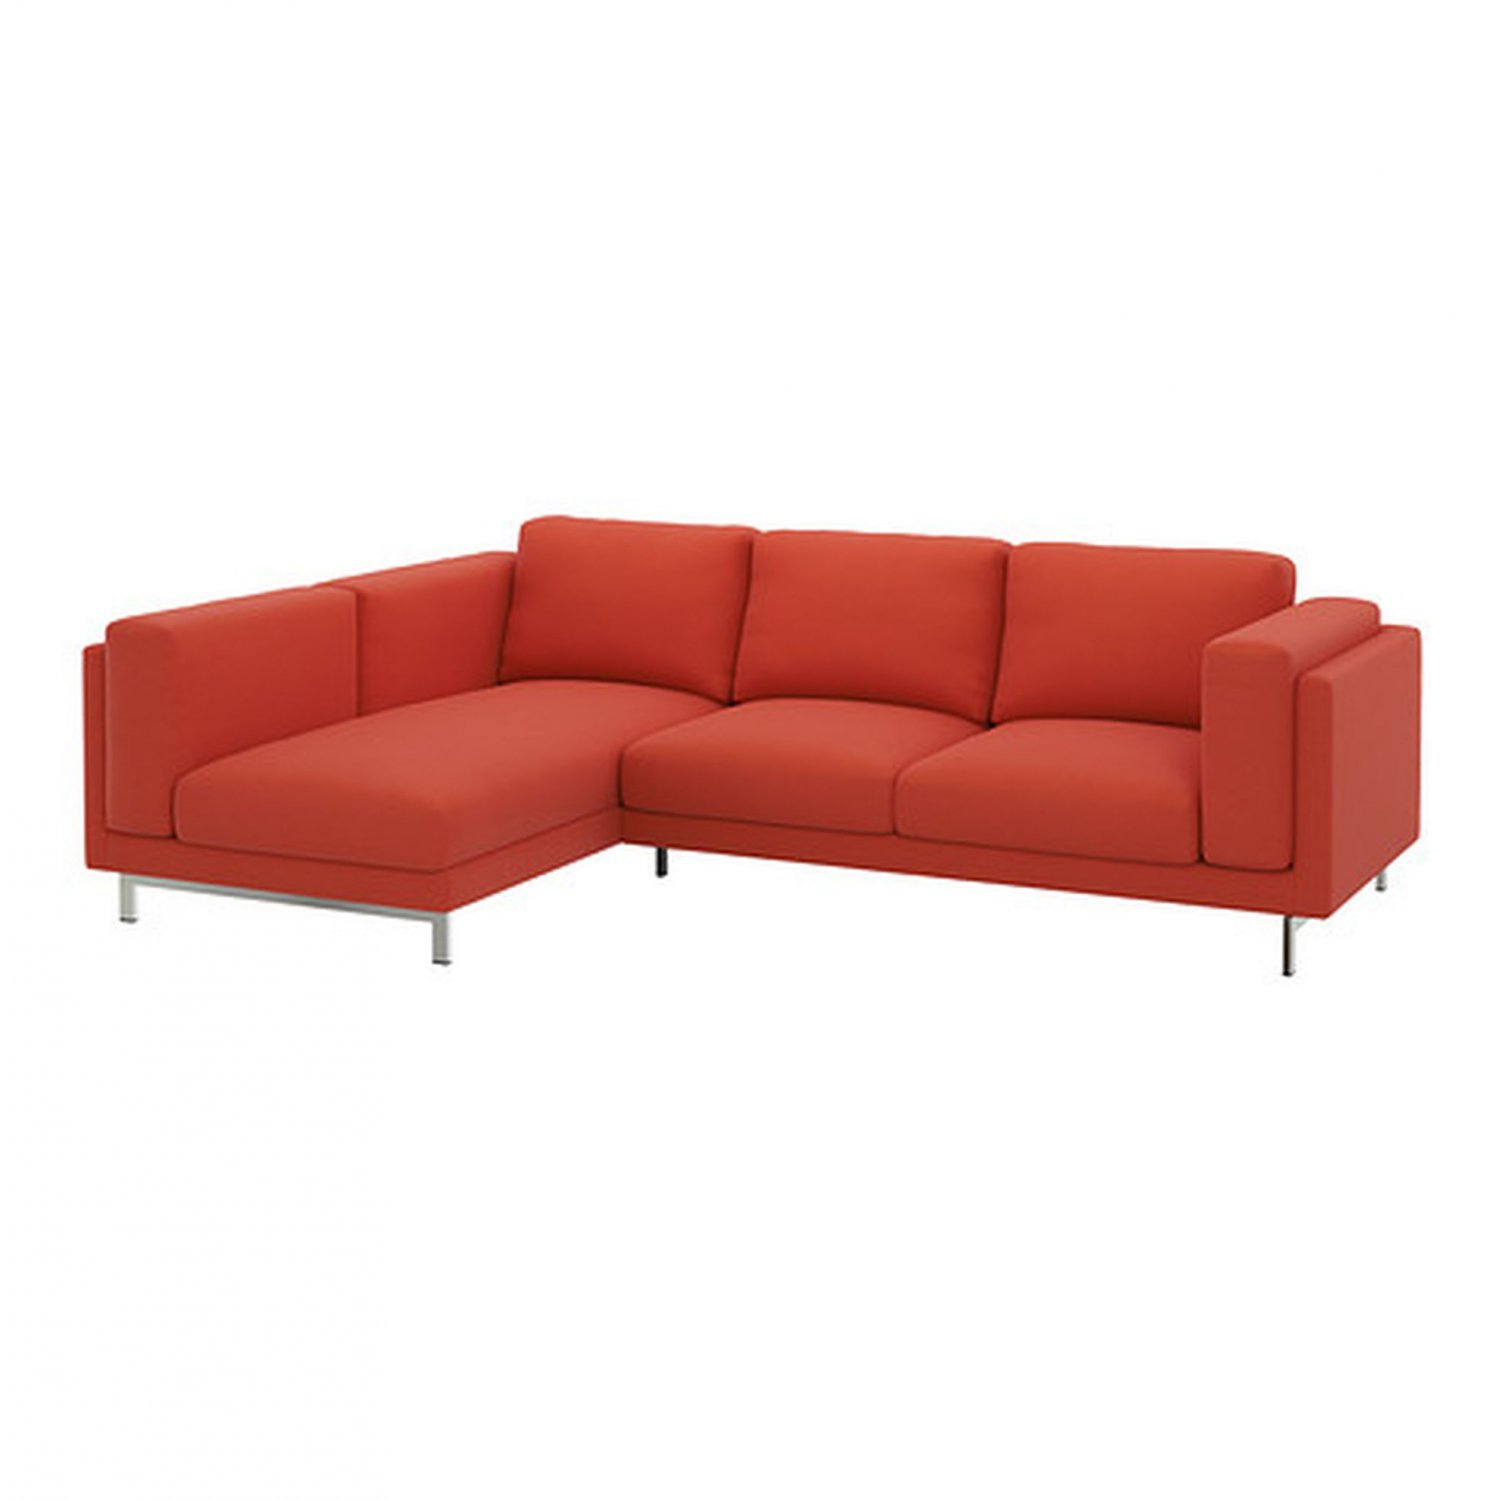 Chaise Orange Ikea Ikea Nockeby Slipcover Loveseat W Chaise Left Cover Risane